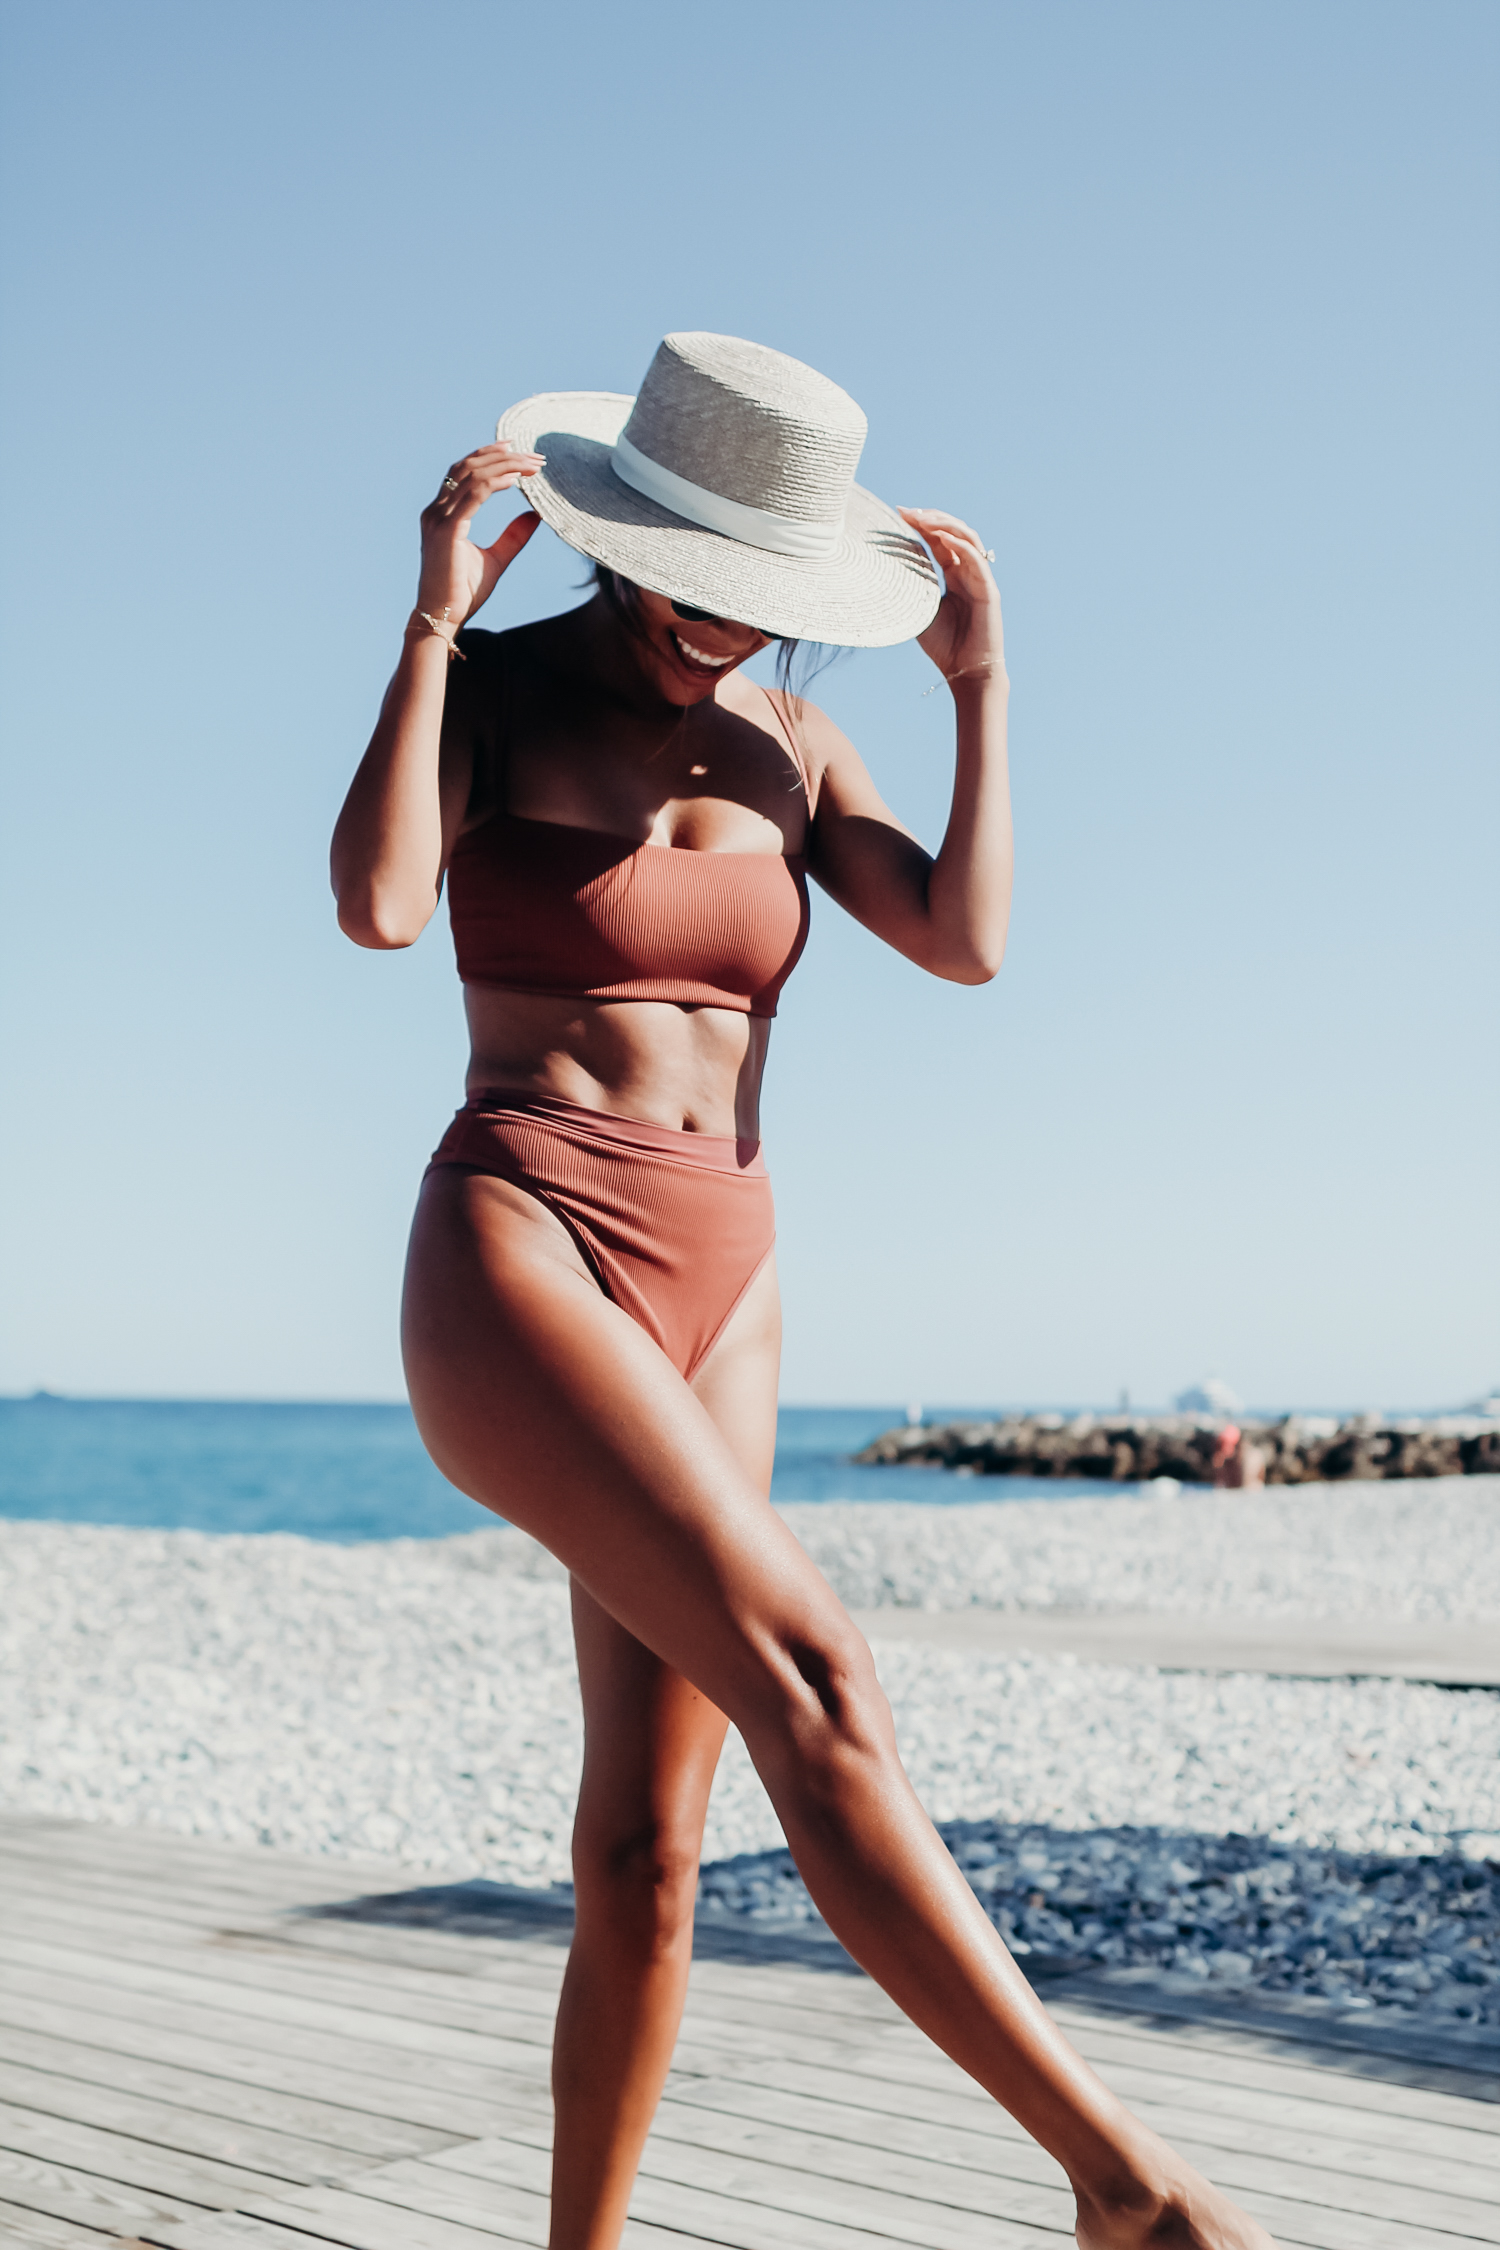 L space new ribbed bikini, Everyday Pursuit in Antibes, France